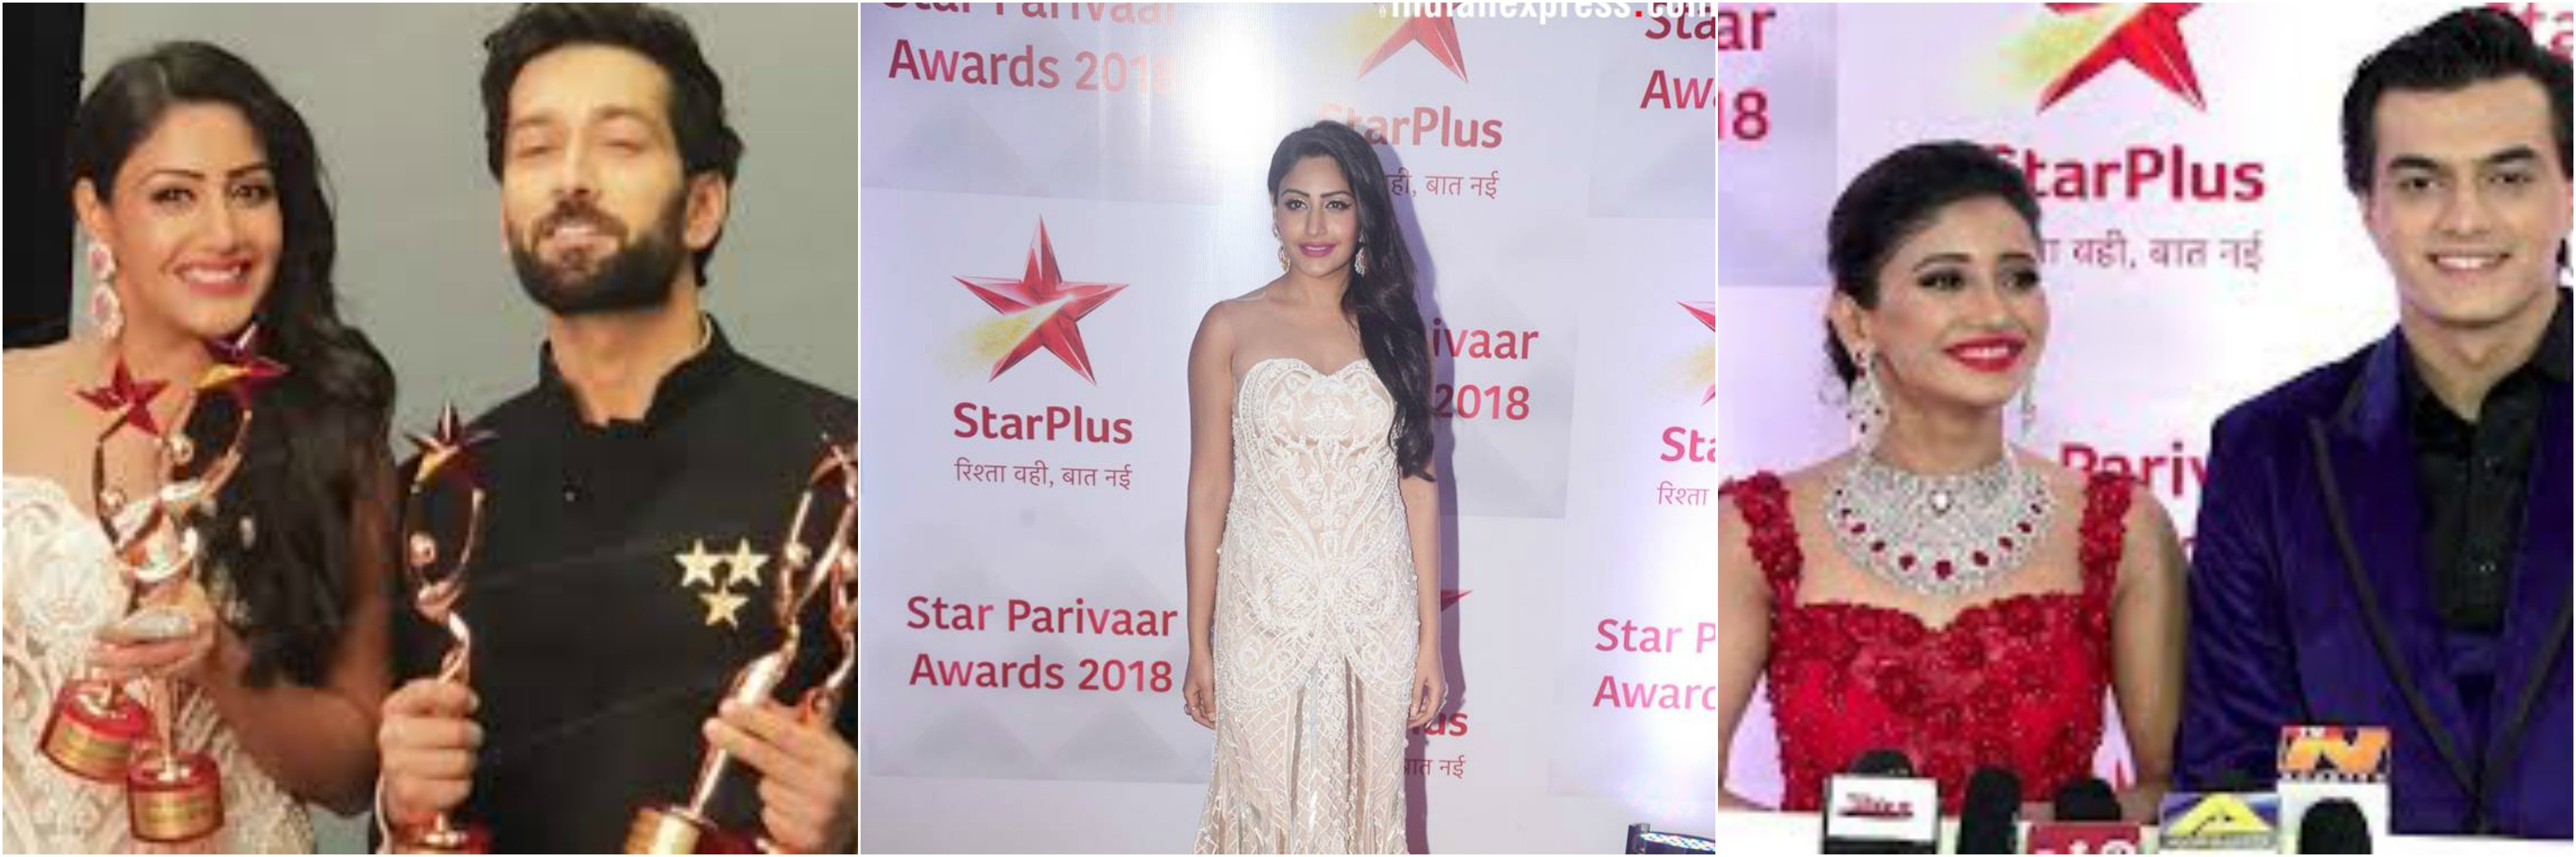 Star Parivaar Awards 2018 : Check out the Complete List of Winners